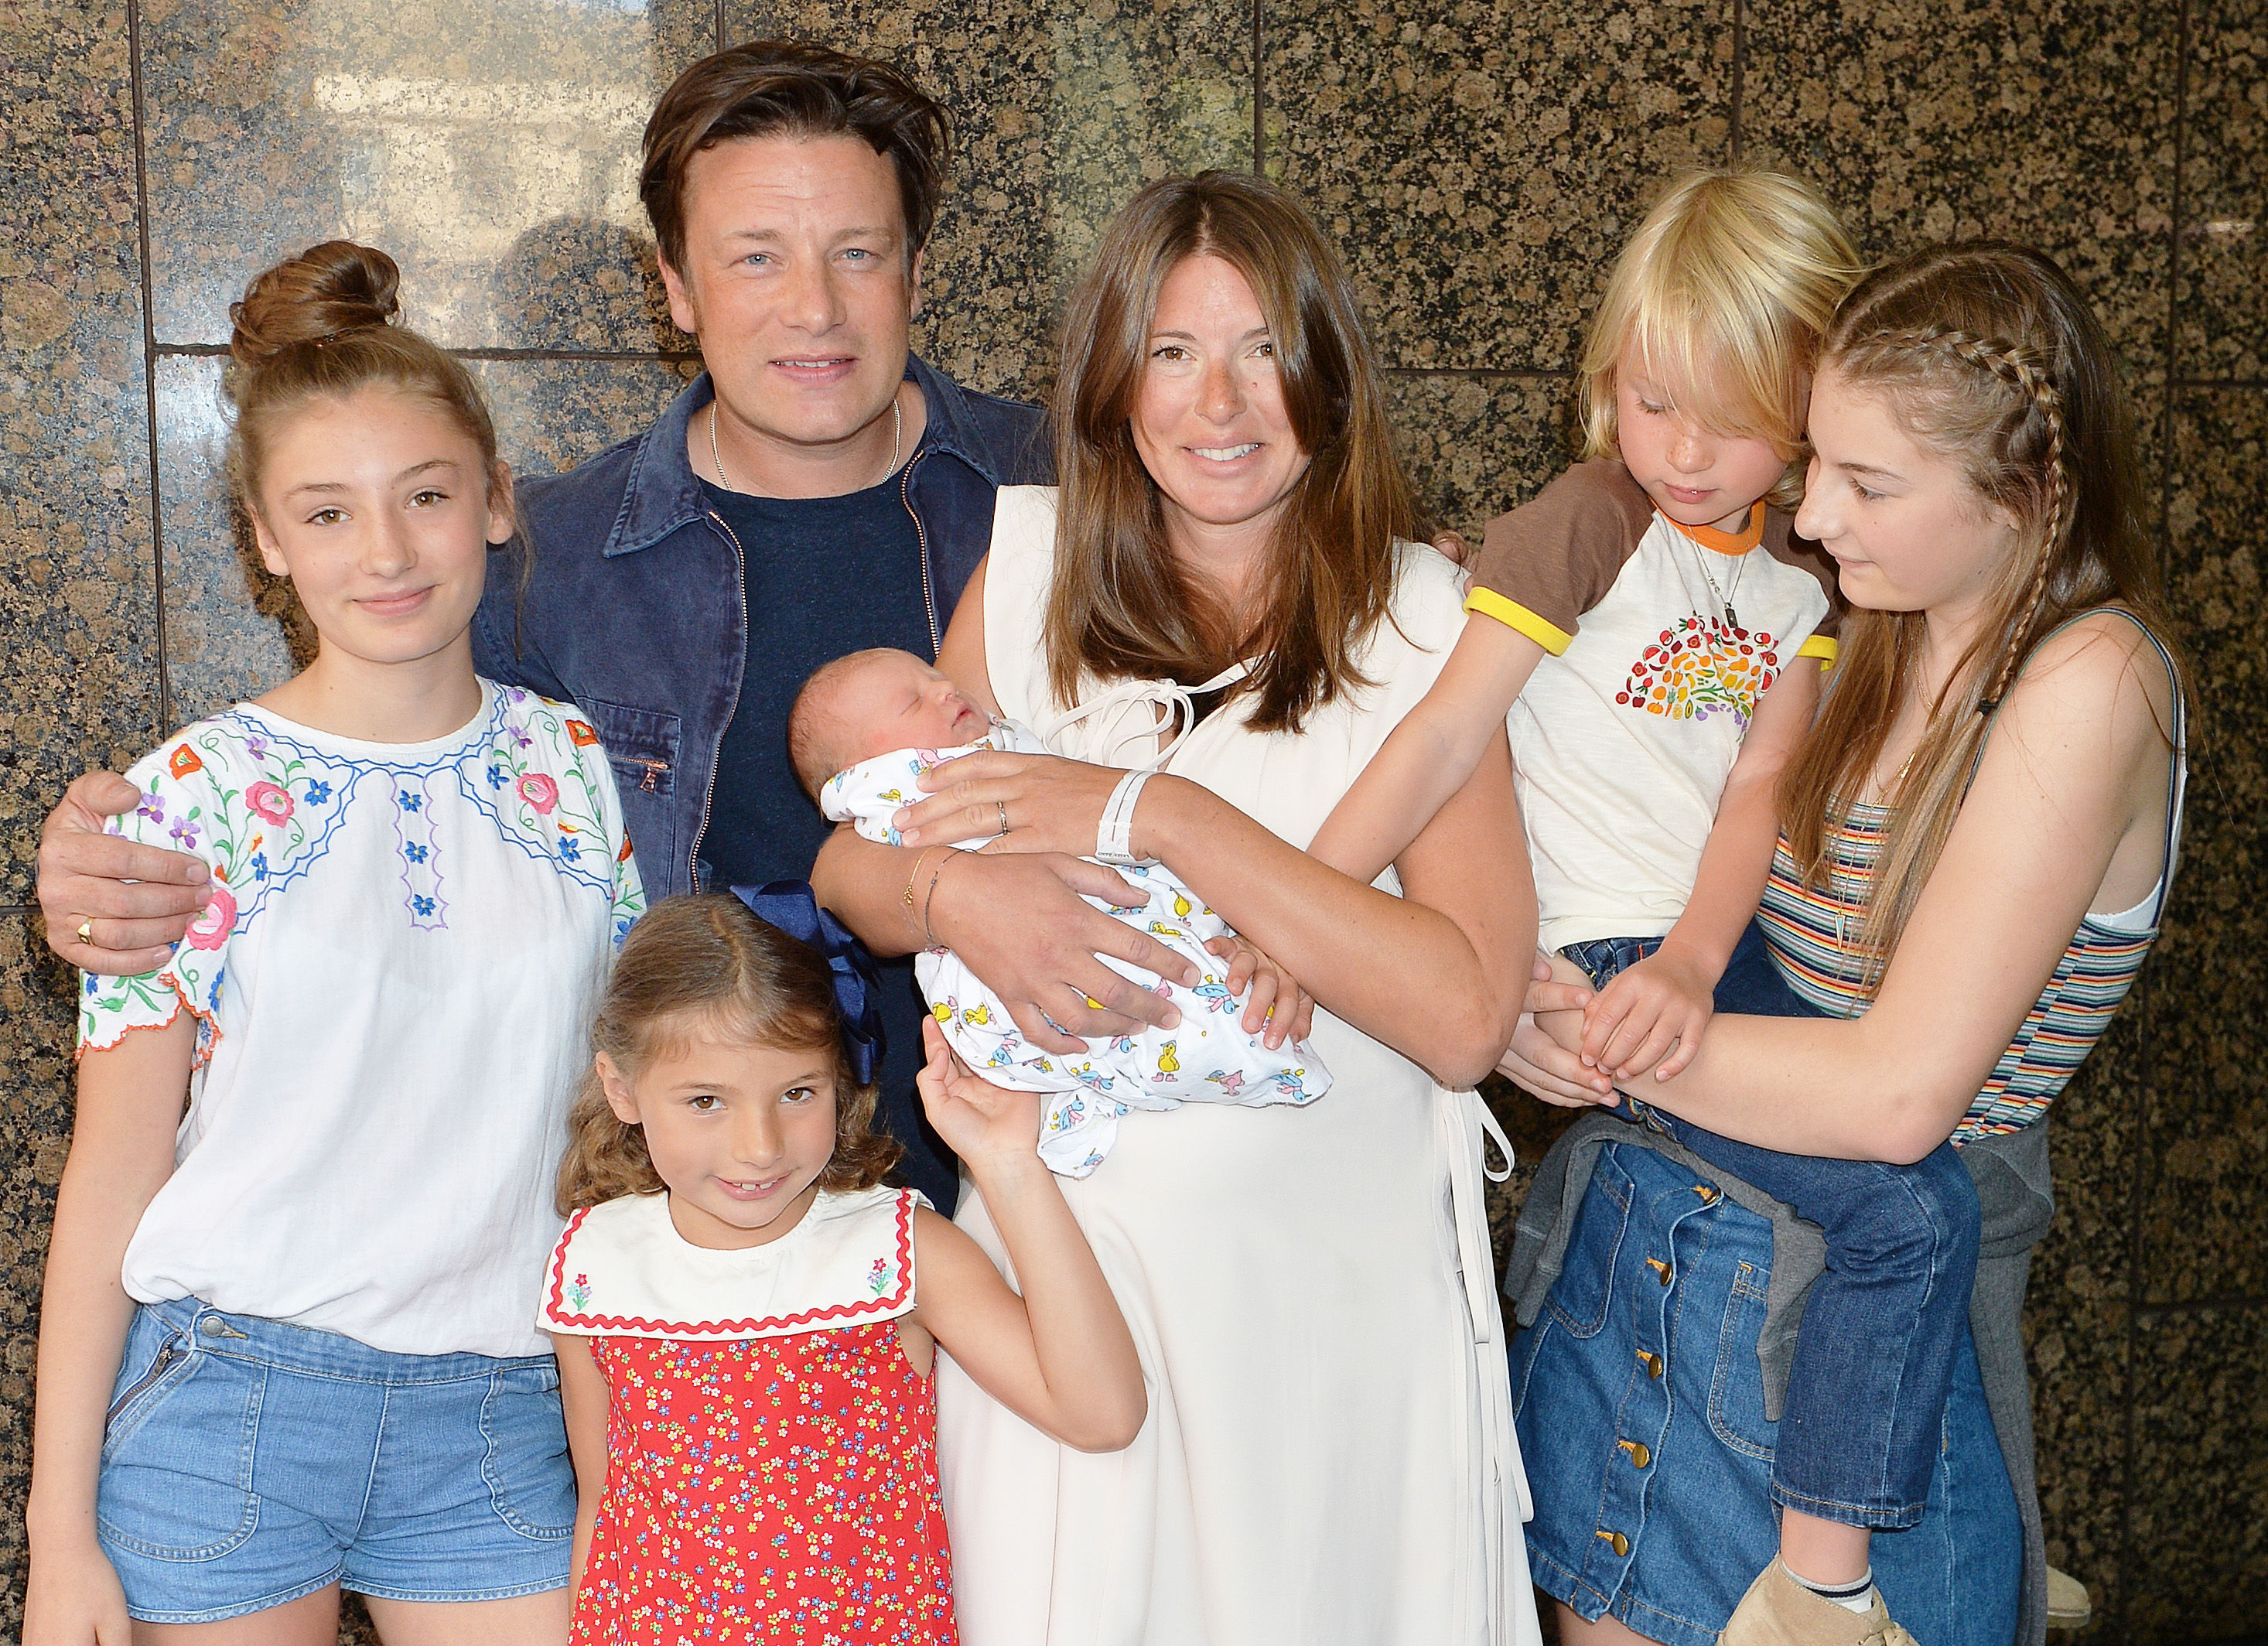 TV chef Jamie Oliver is jokingly told off by his mum